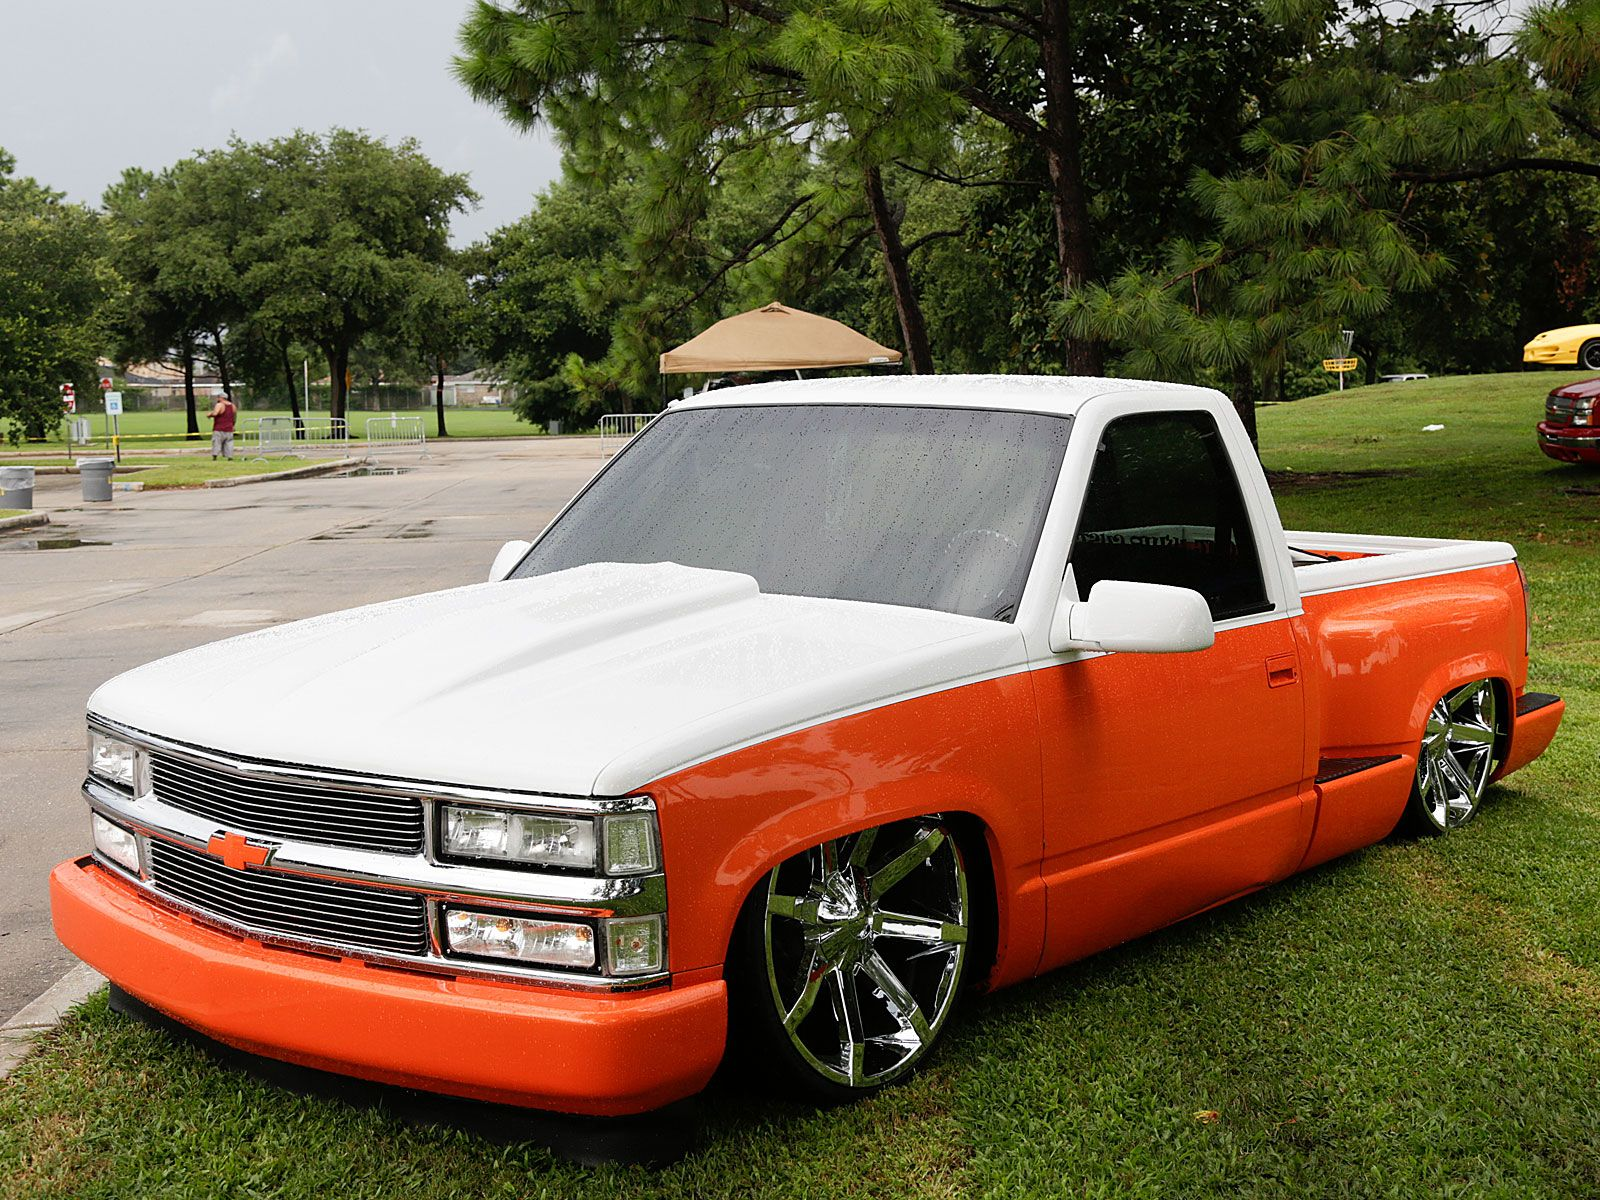 1988 chevy pickup truck paint schemes 2008 ford e350 trailer wiring harness in addition bike tire parts  [ 1600 x 1200 Pixel ]